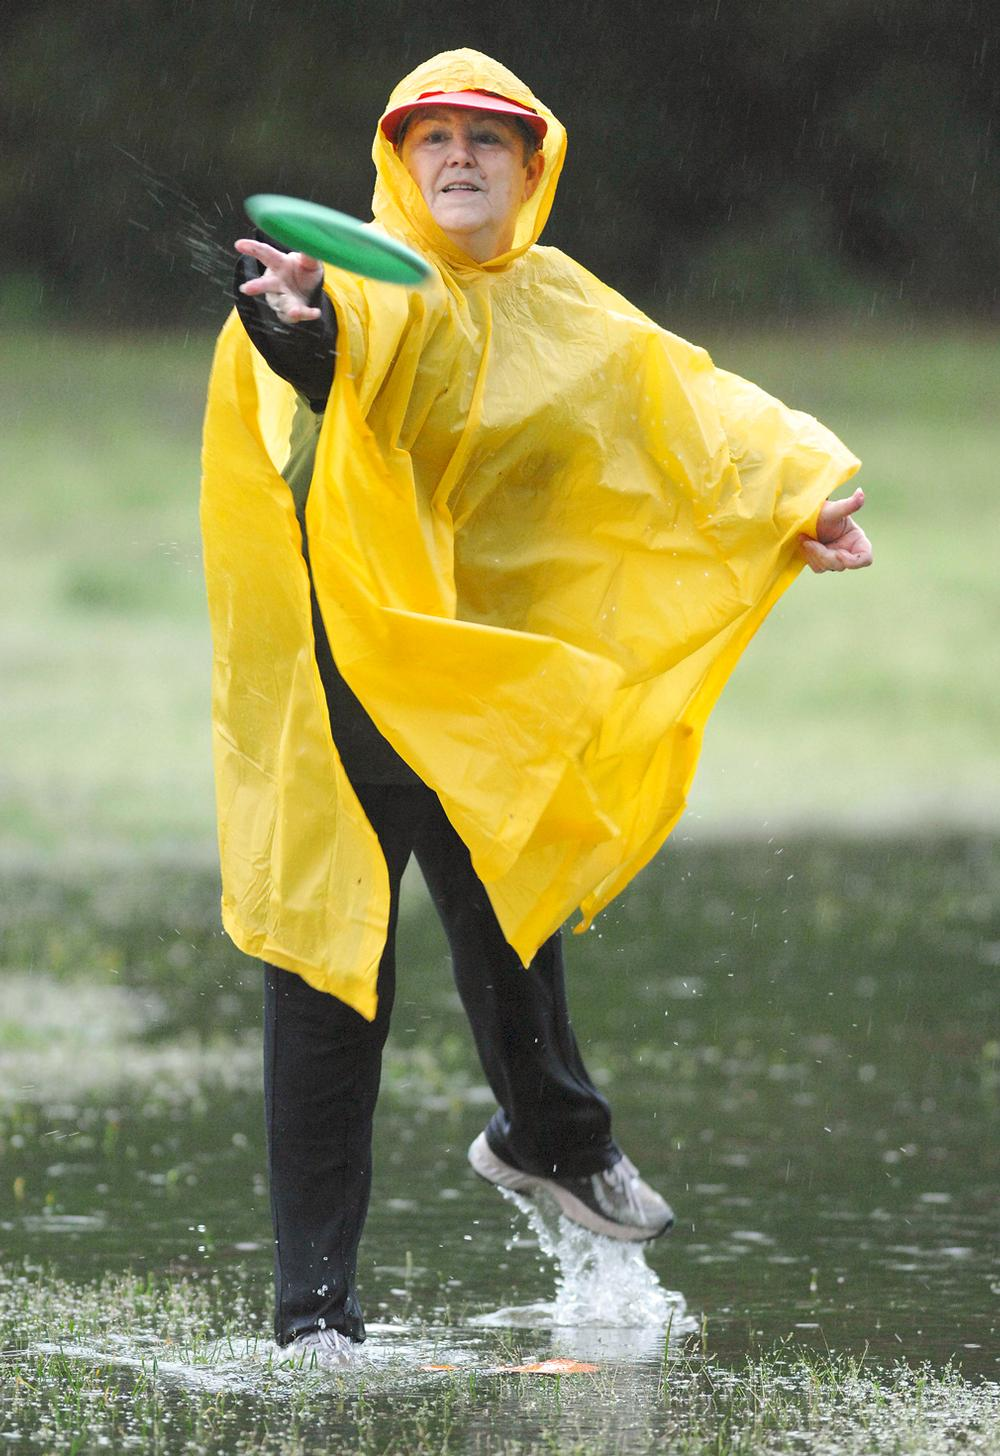 Disc golf can be played in pretty much any terrain and in any weather / nick tomeck / press association